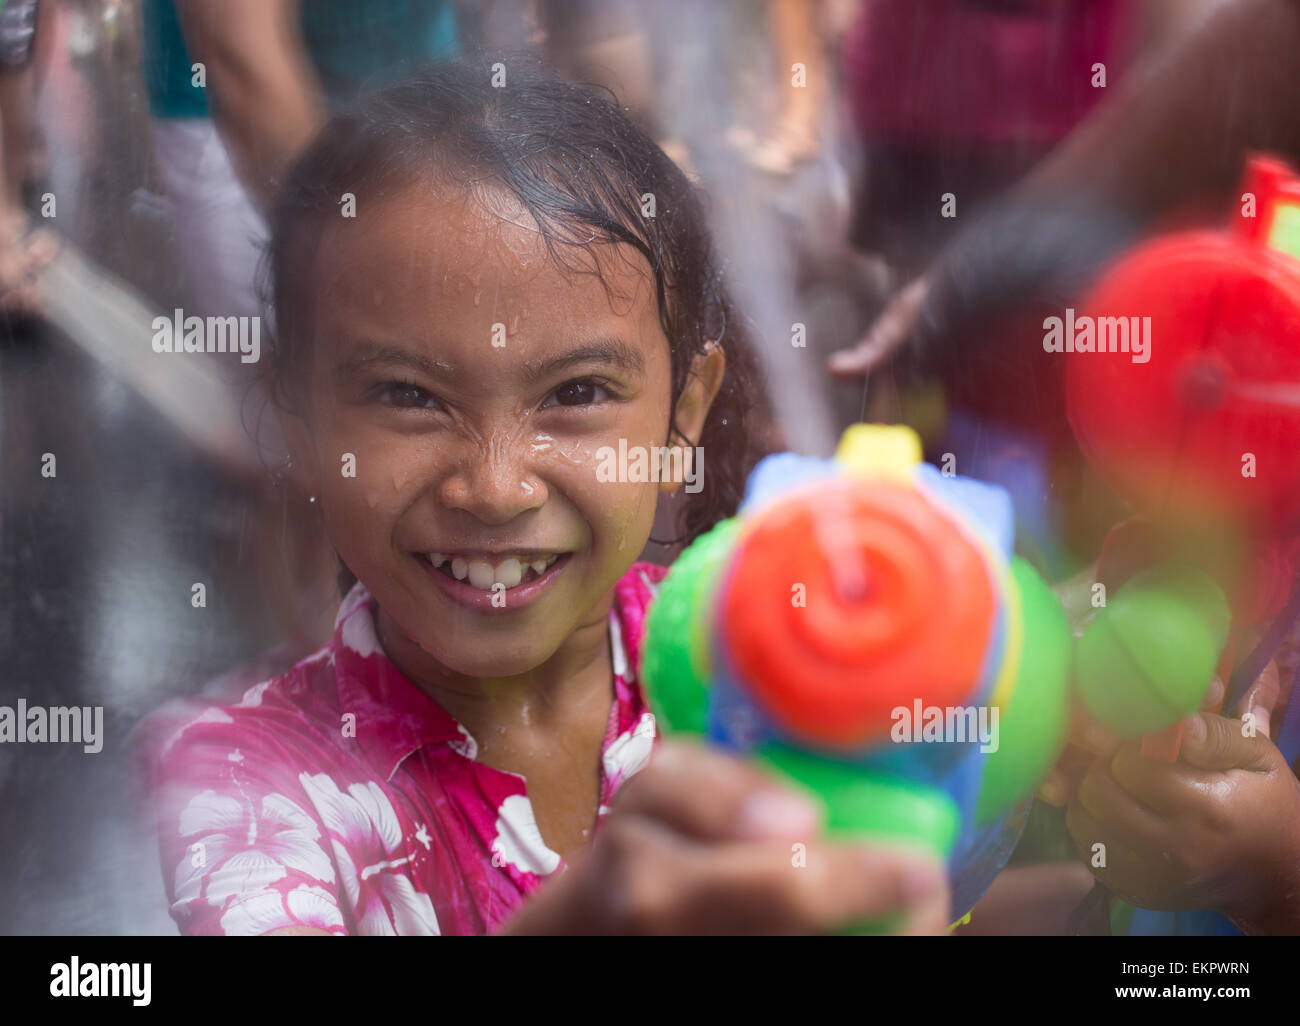 Bangkok, Thailand. 13th April, 2015. A young girl fires her water pistol during the annual Songkran festival on - Stock Image